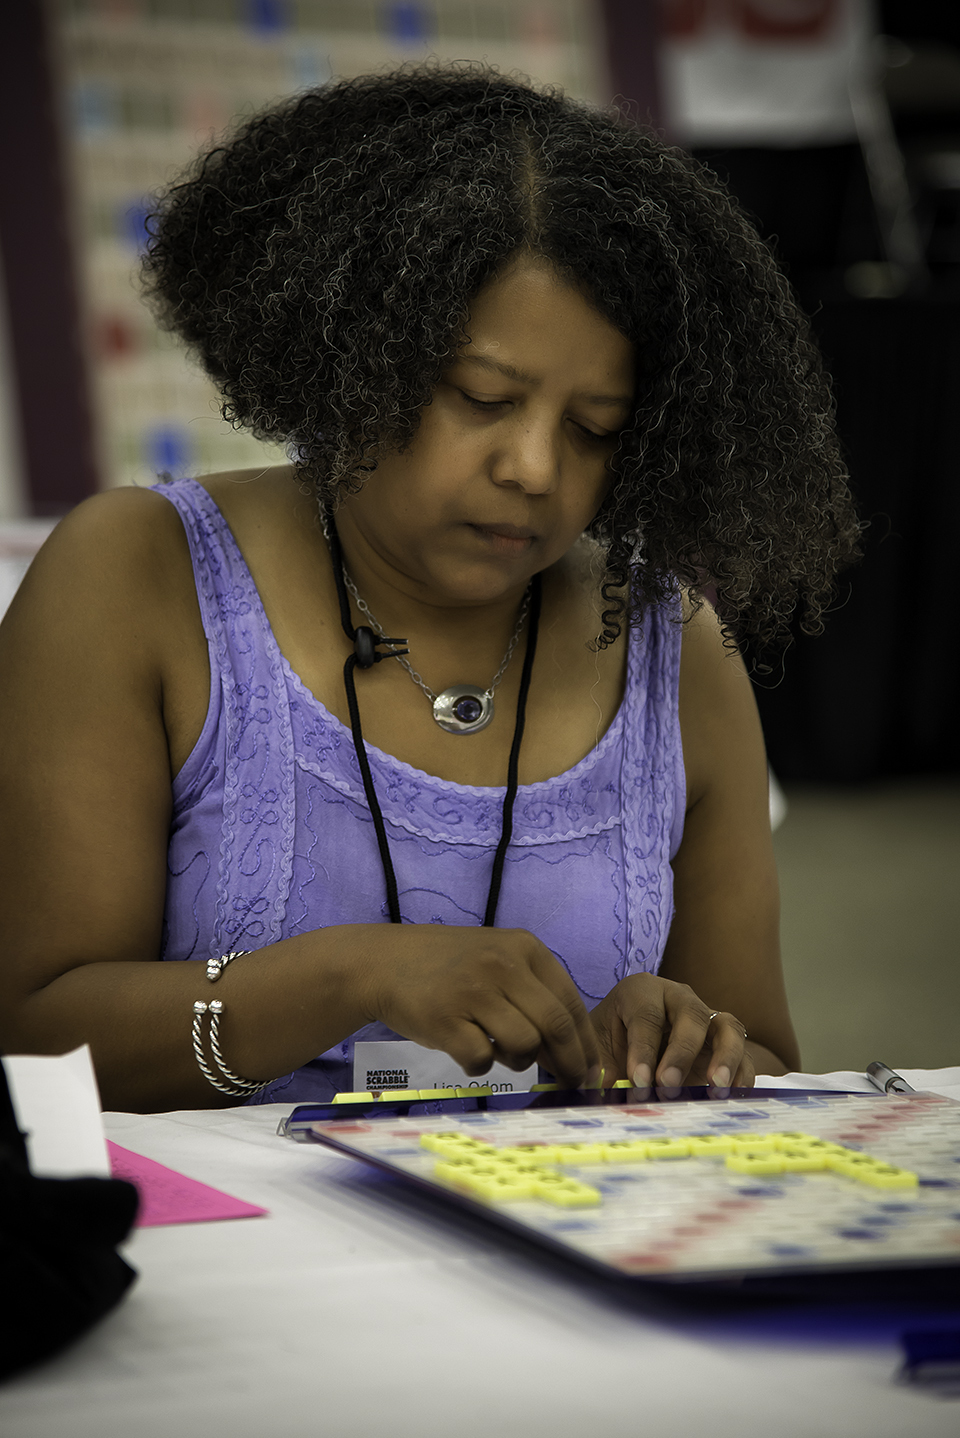 Lisa Odom from St. Louis Park, MN plays during the 2014 National SCRABBLE Championship at the Buffalo Niagara Convention Center, Wednesday August 13. Odom, the highest ranking female in Division 1, placed 12th at the tournament which gathered over 500 global players. (Photo: Business Wire)